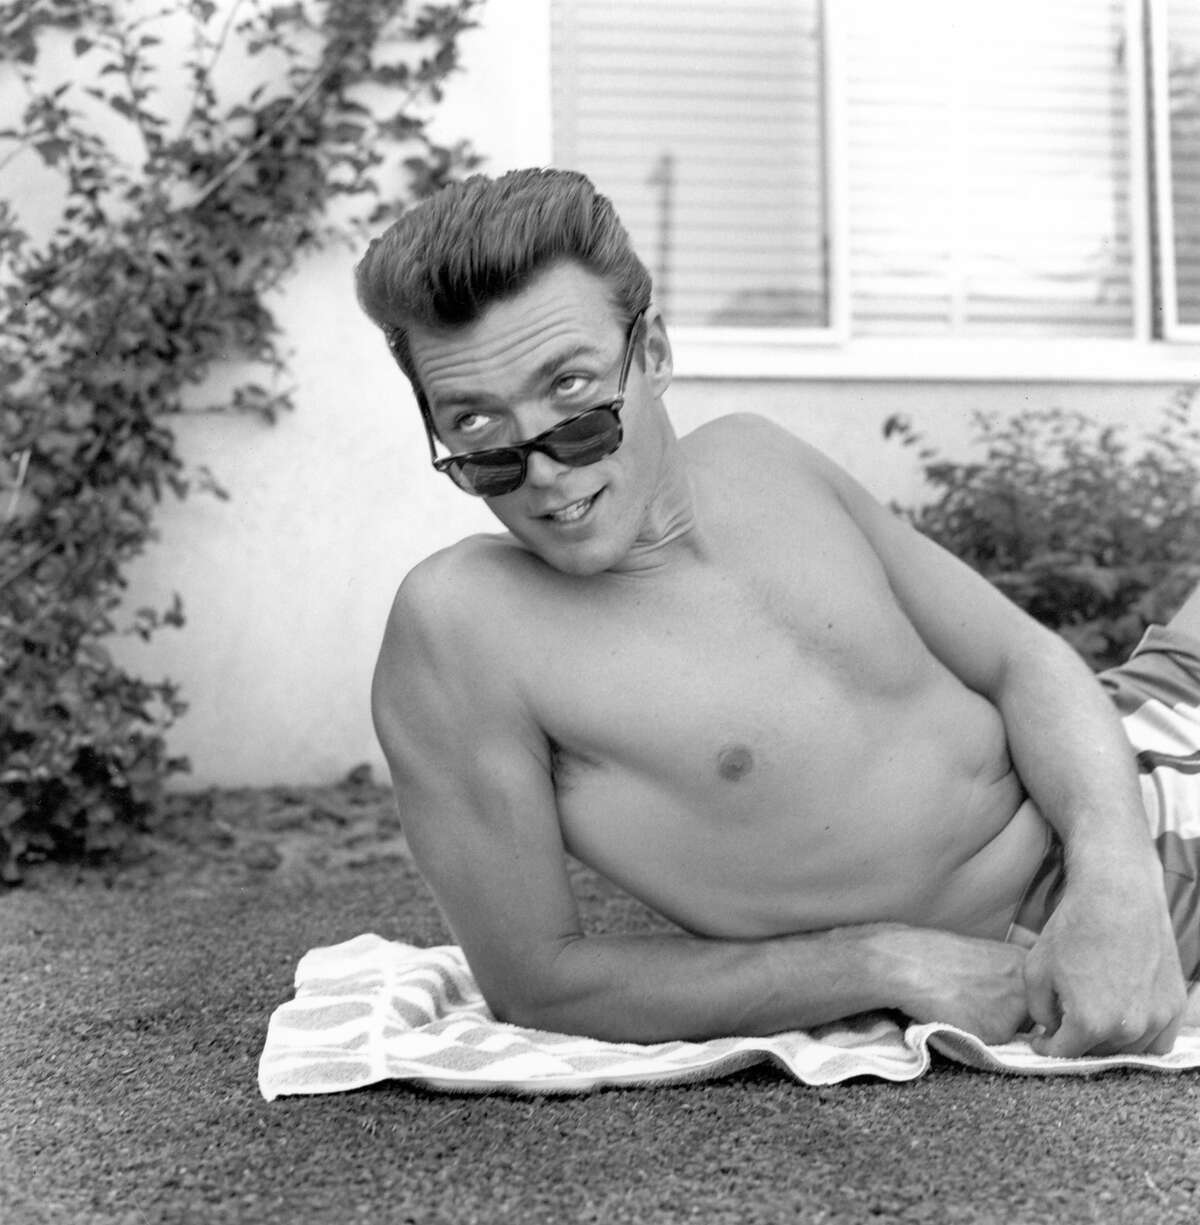 Actor Clint Eastwood lies on a towel and looks over his sunglasses at home on June 1, 1956 in Los Angeles.